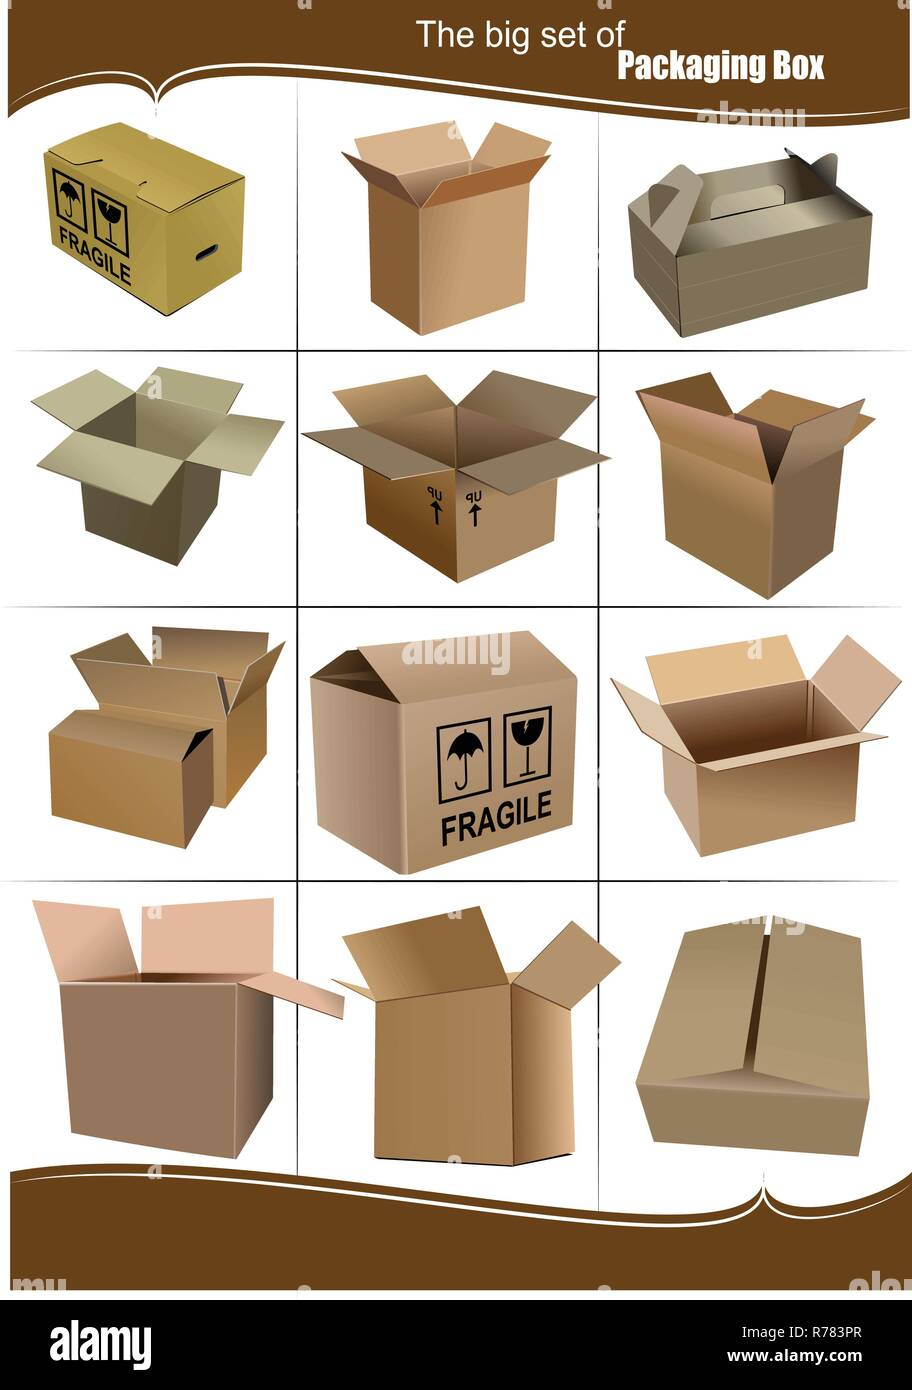 Big Set of carton packaging boxes isolated over a white background - Stock Vector